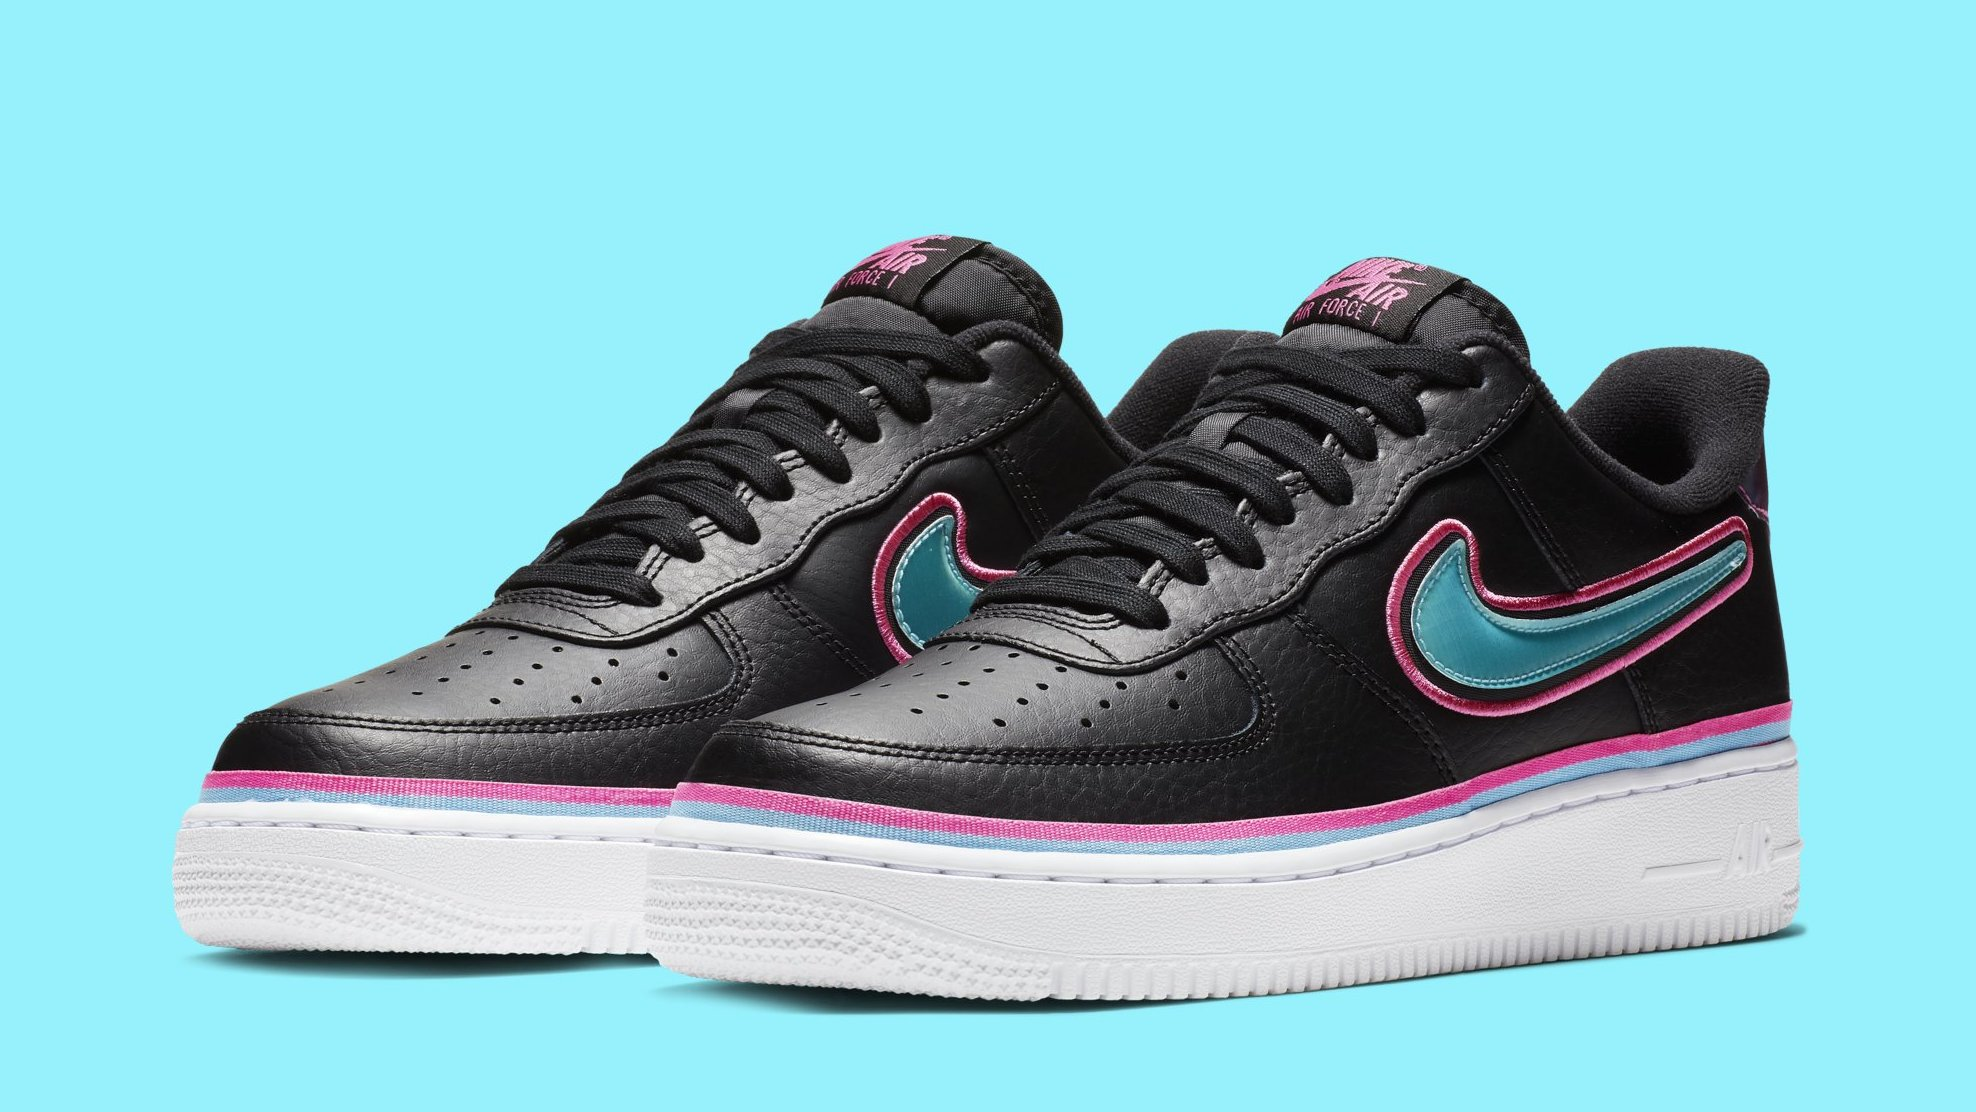 ef26228dec8bc NBA x Nike Air Force 1 Low 'Miami' Release Date | Sole Collector